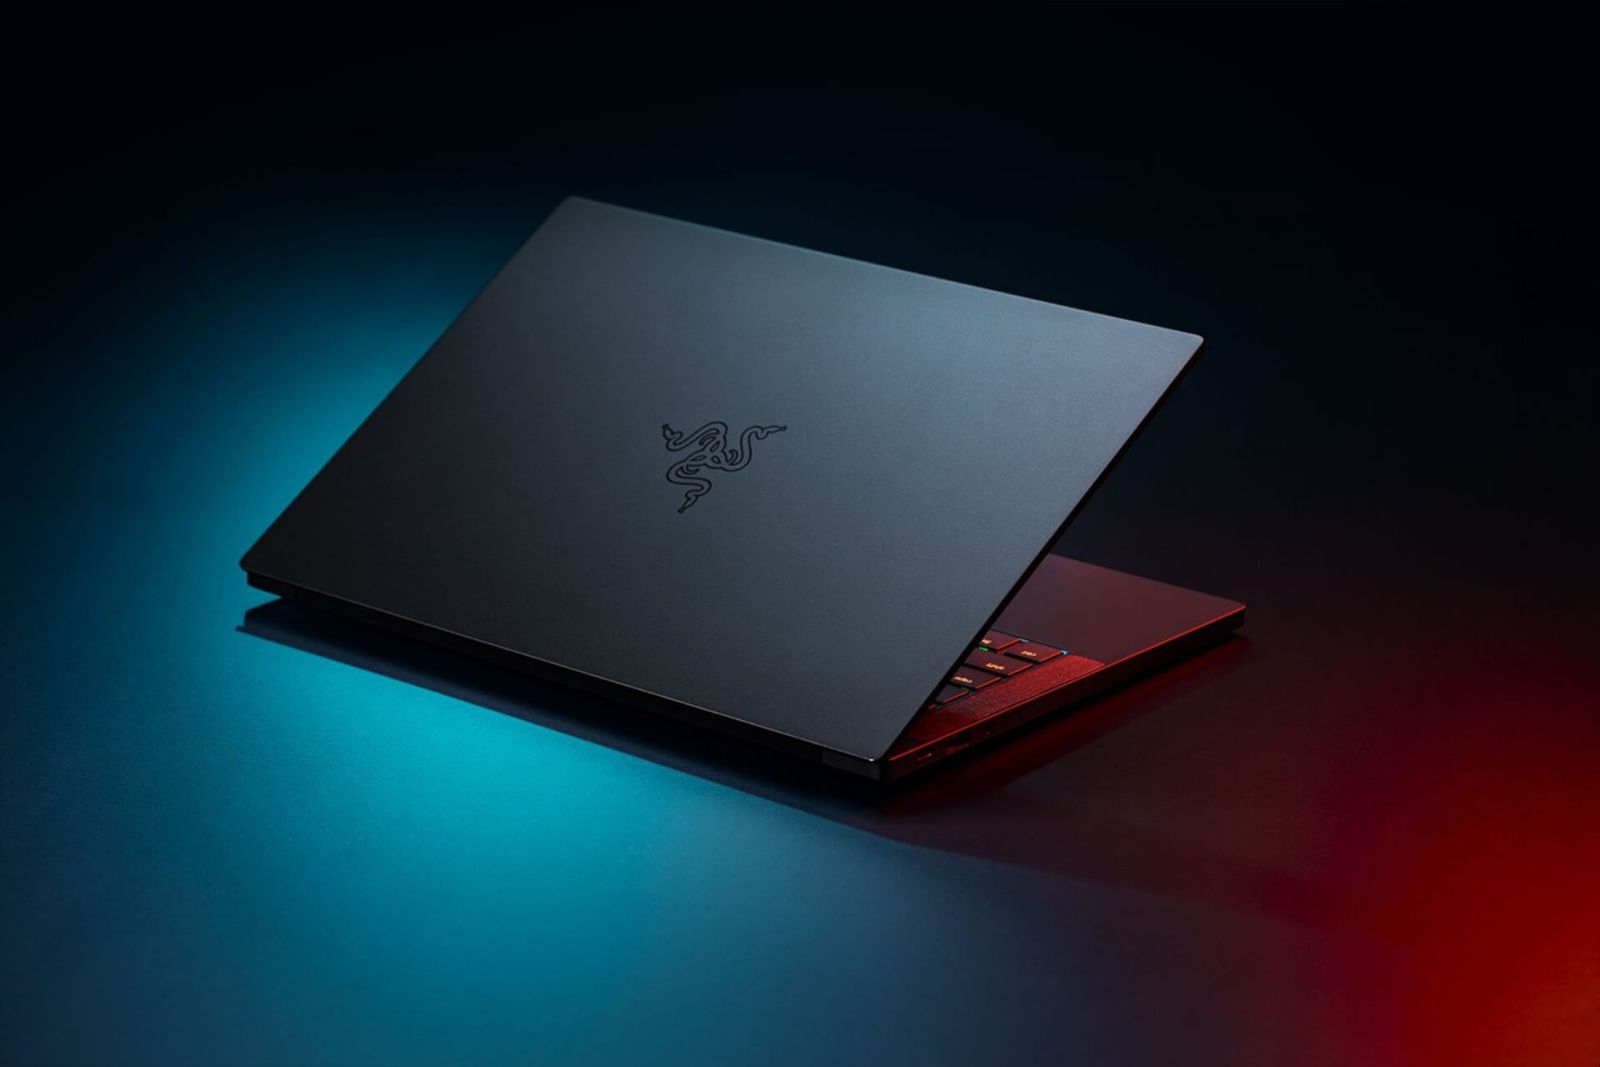 Razer Blade Stealth 13 Now Equipped with Intel 11th Gen Chips and OLED Screen Option